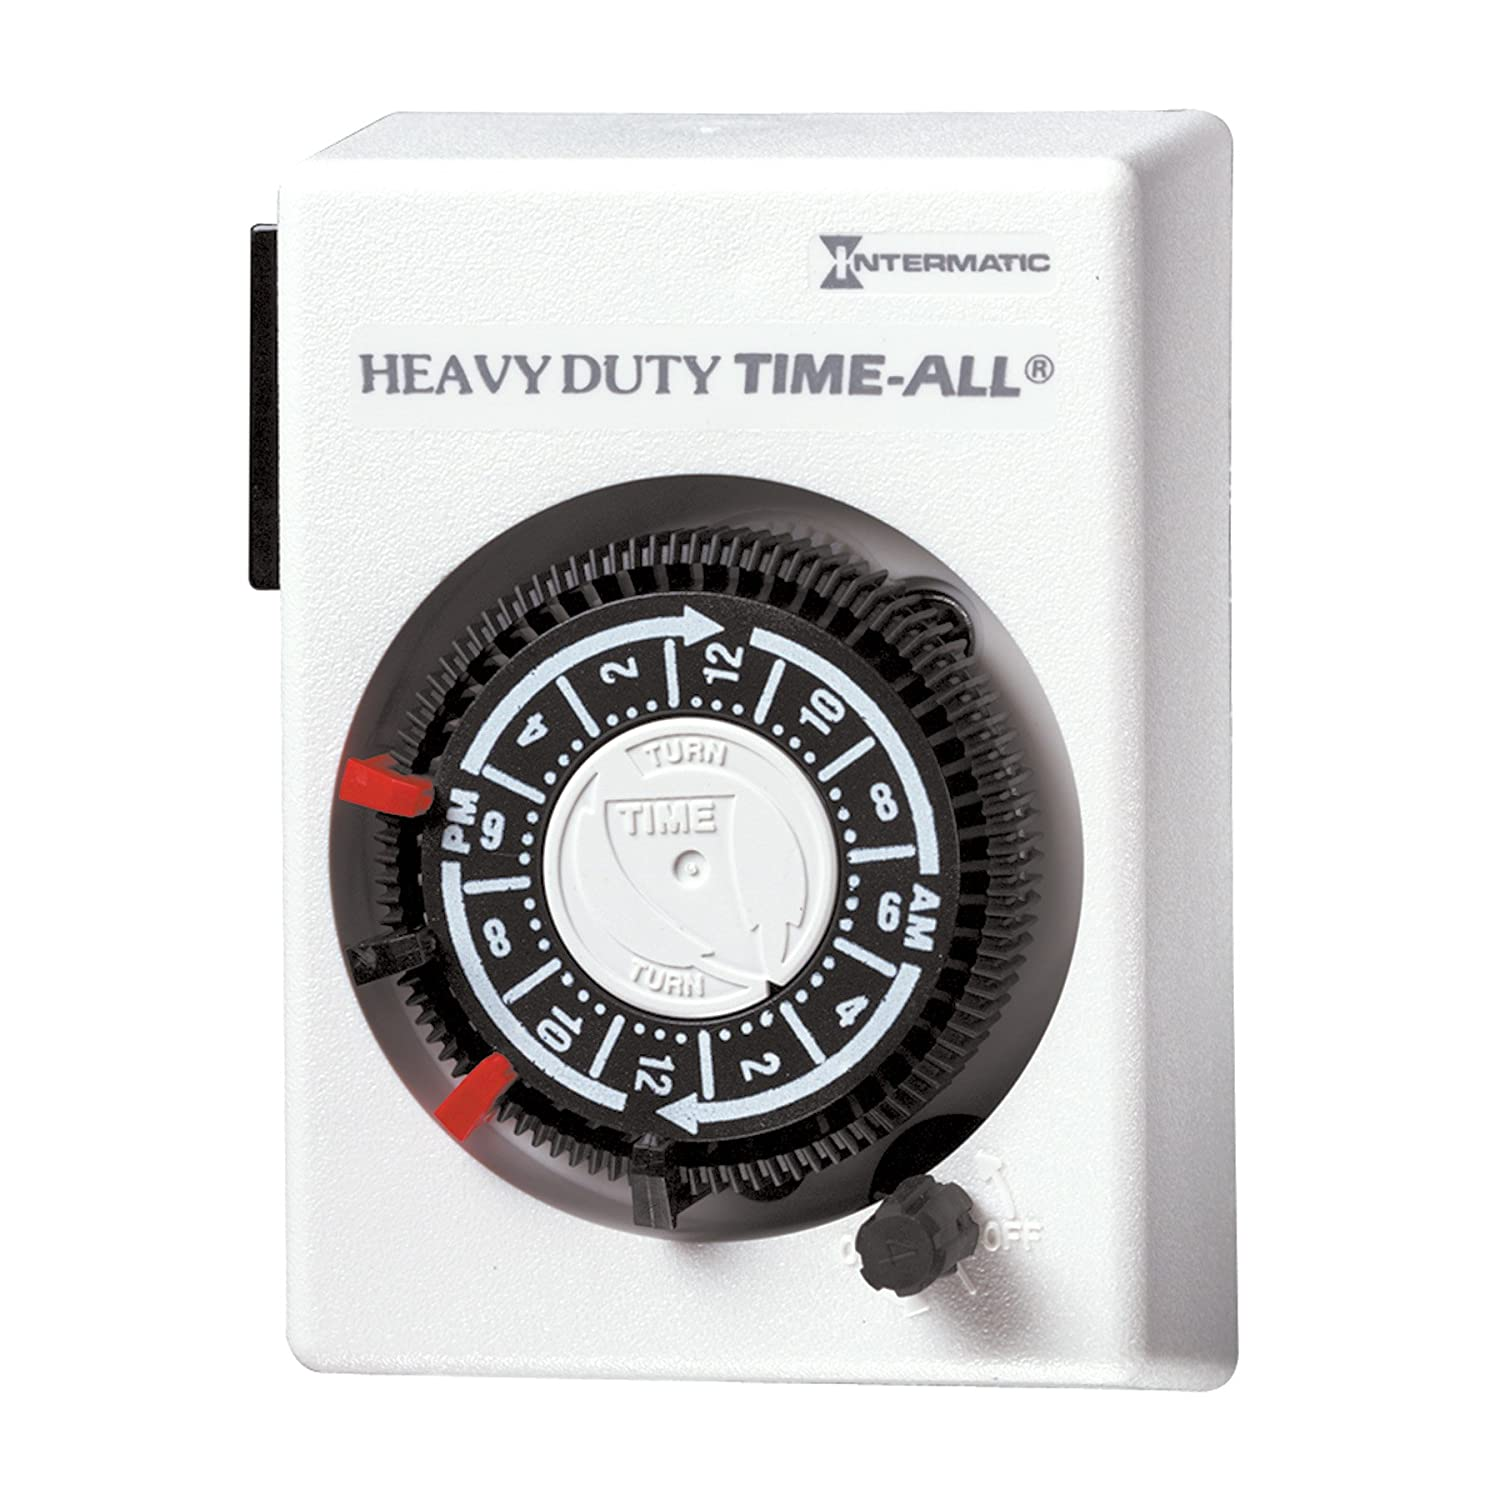 Hb110 Series 20-Amp Air Conditioner Appliance Plug-In Timer White Intermatic